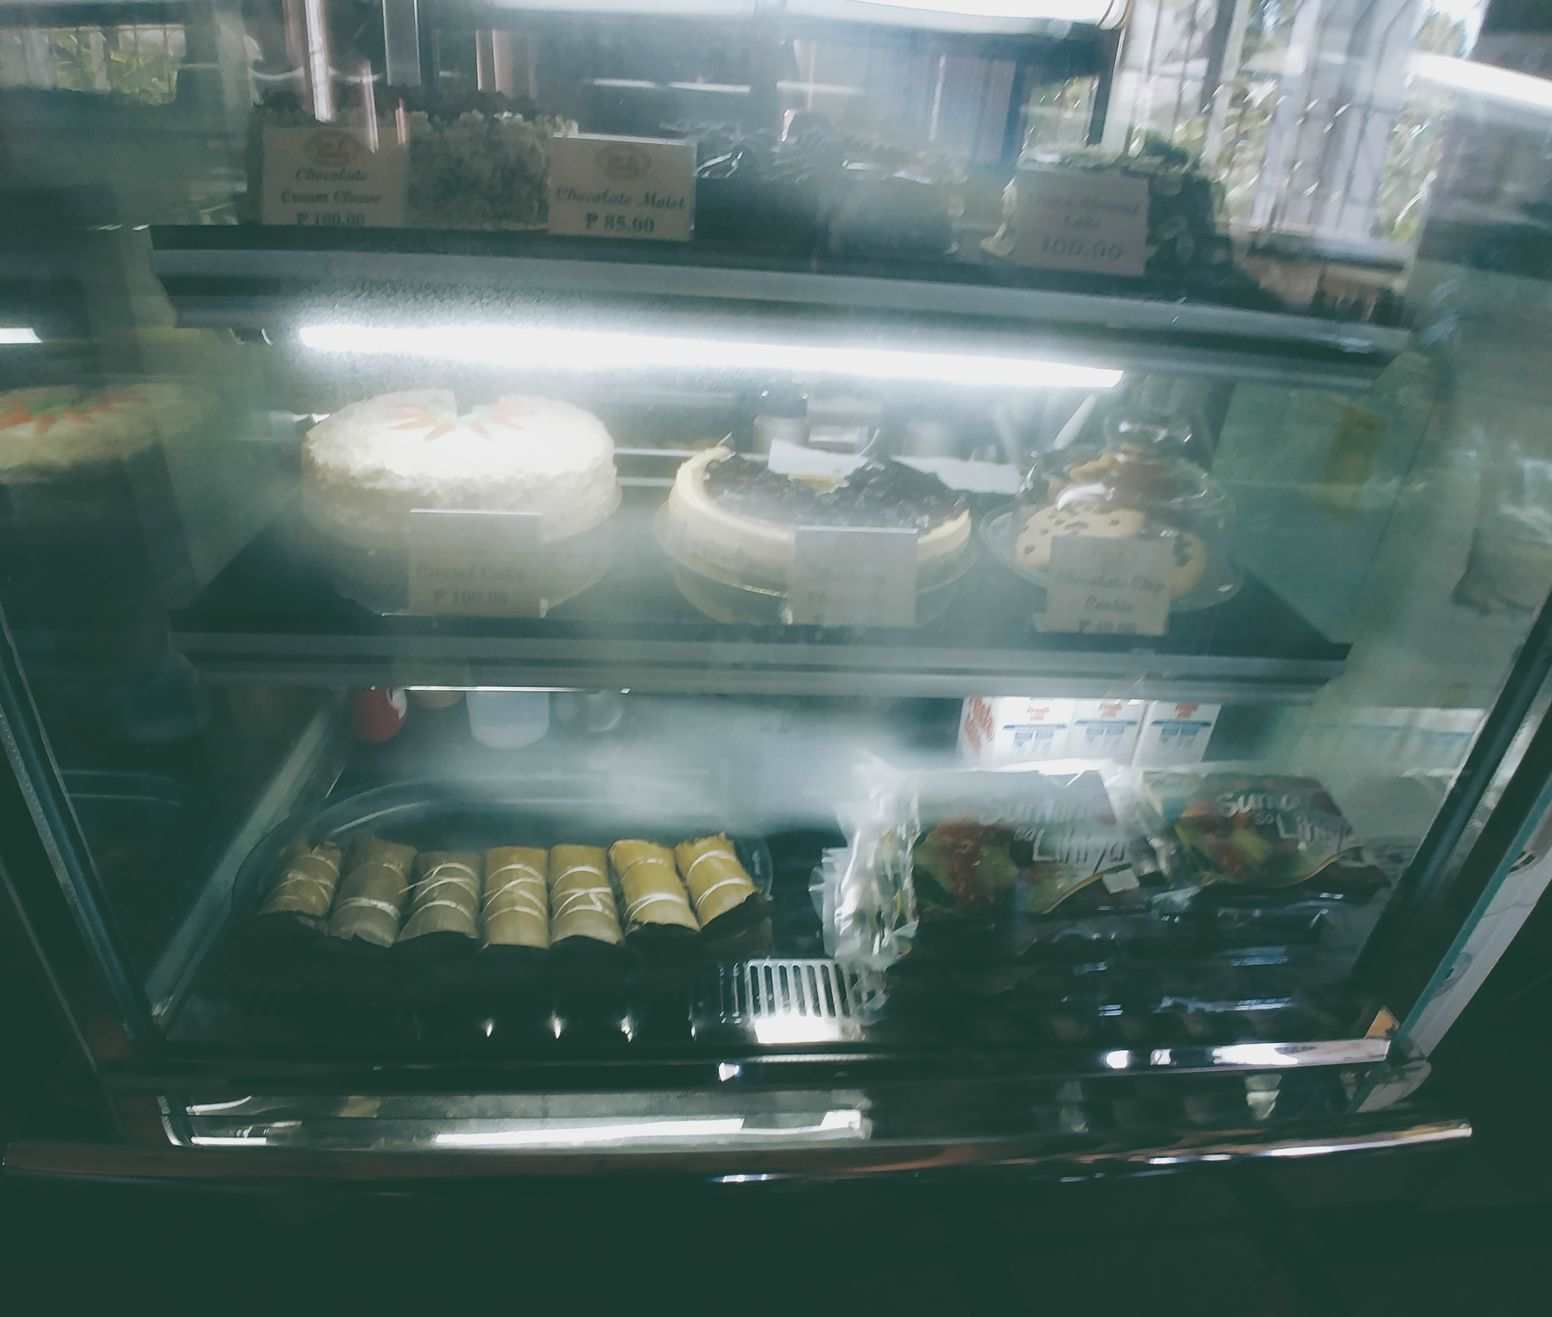 native cakes and pastries sold at Cafe Amadeo